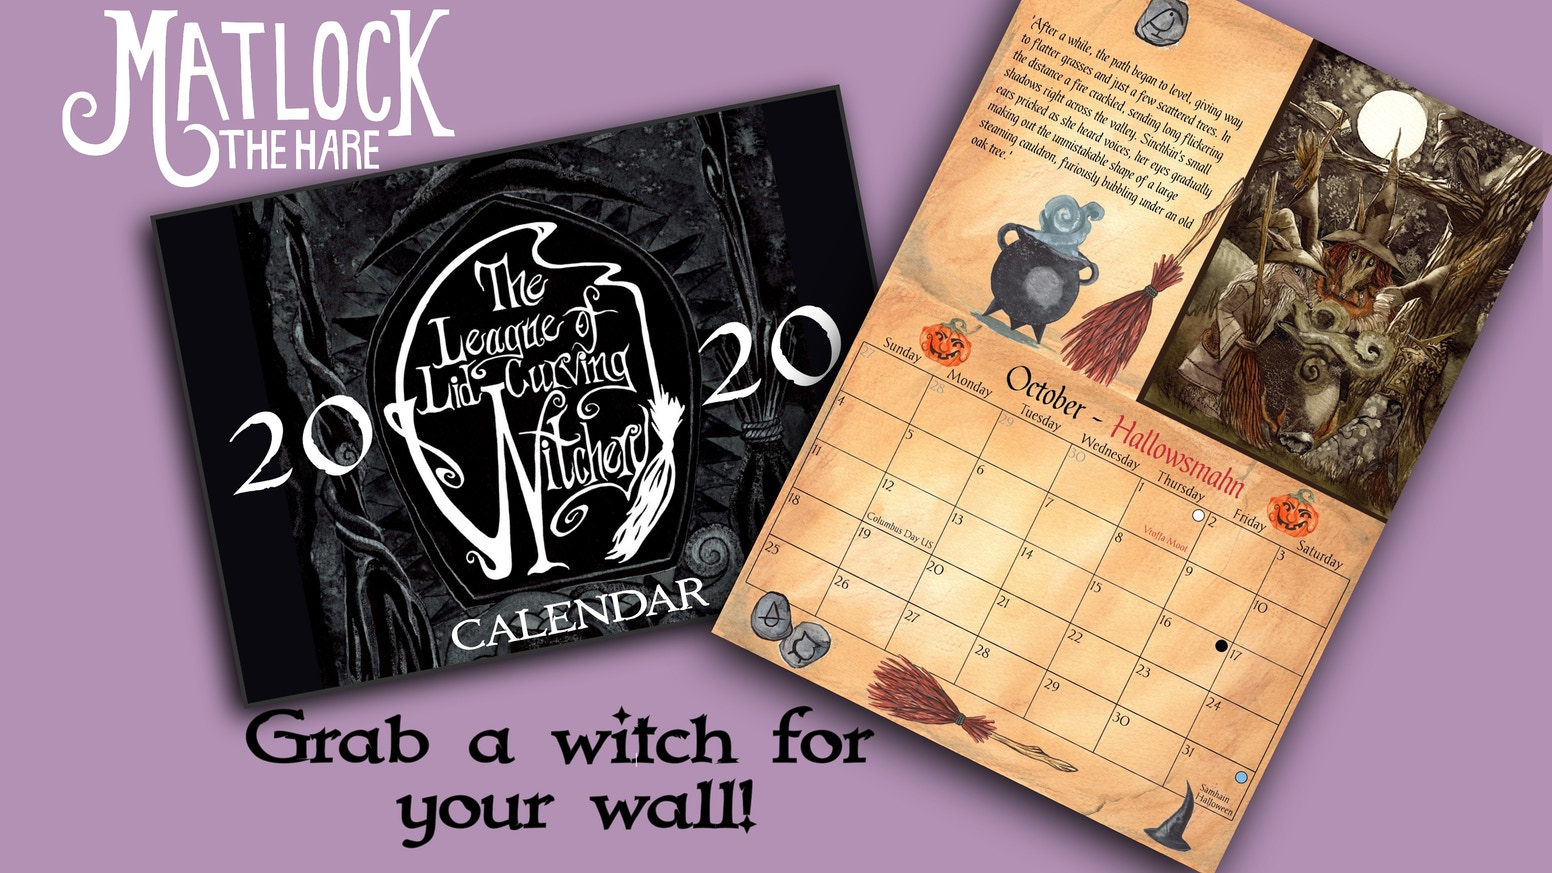 The League of Lid-Curving Witchery' 2020 Calendar by Phil